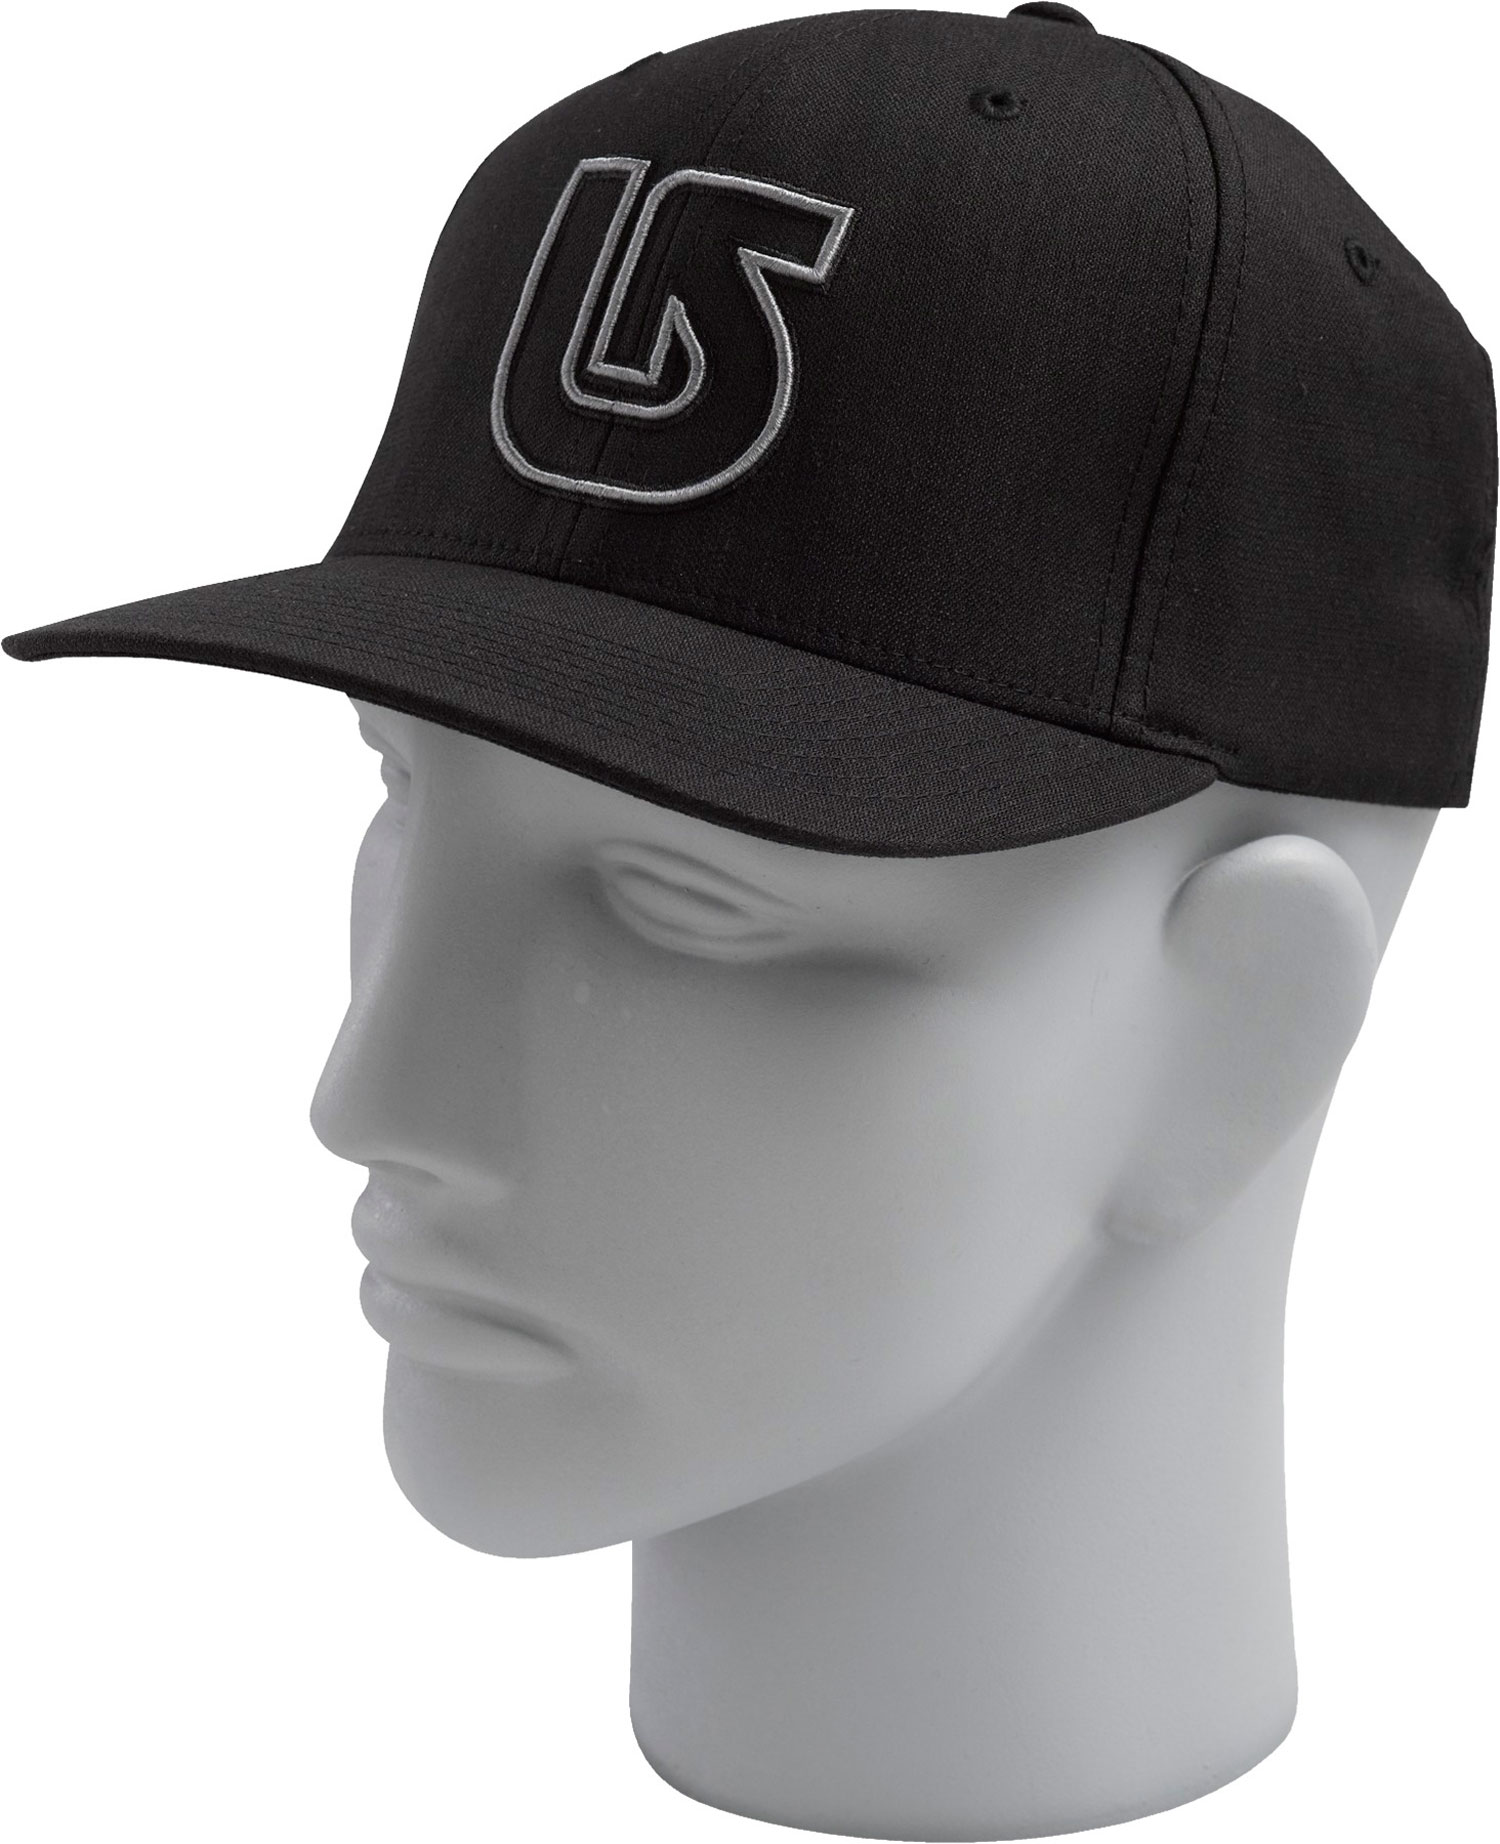 Snowboard Burton Striker Flexfit Cap True Black - $14.95